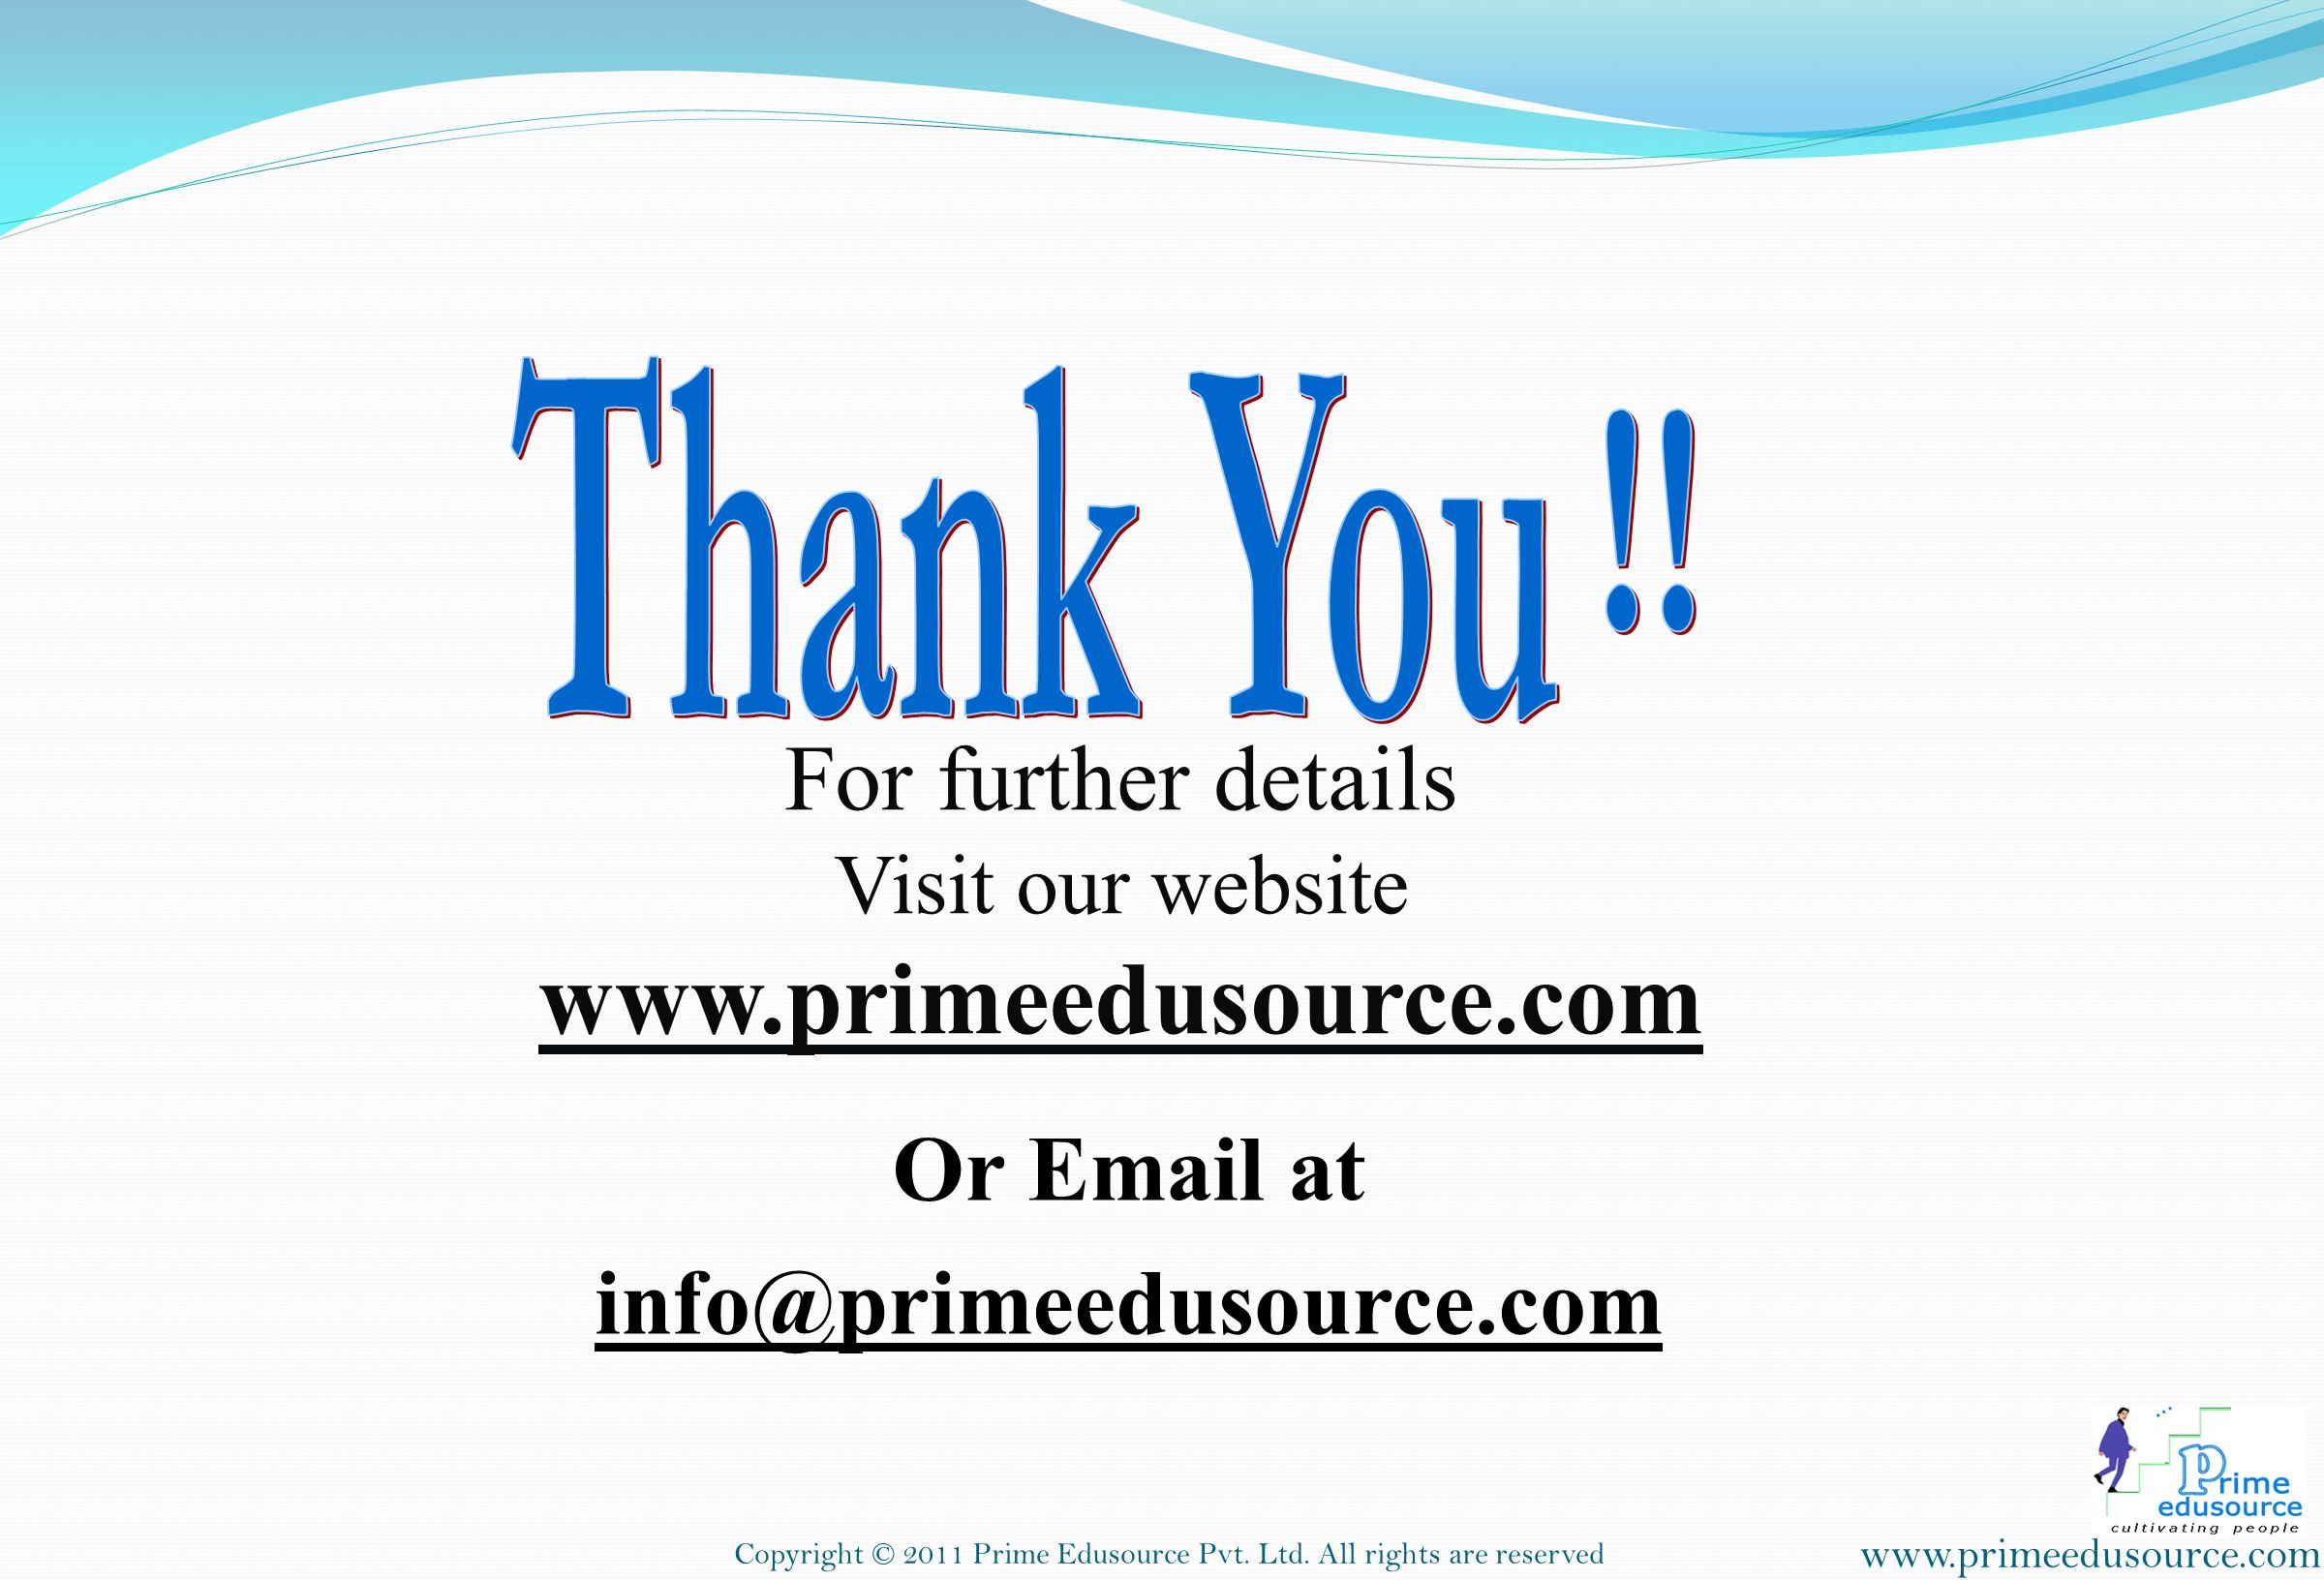 Thank You !! www.primeedusource.com For further details Or Email at